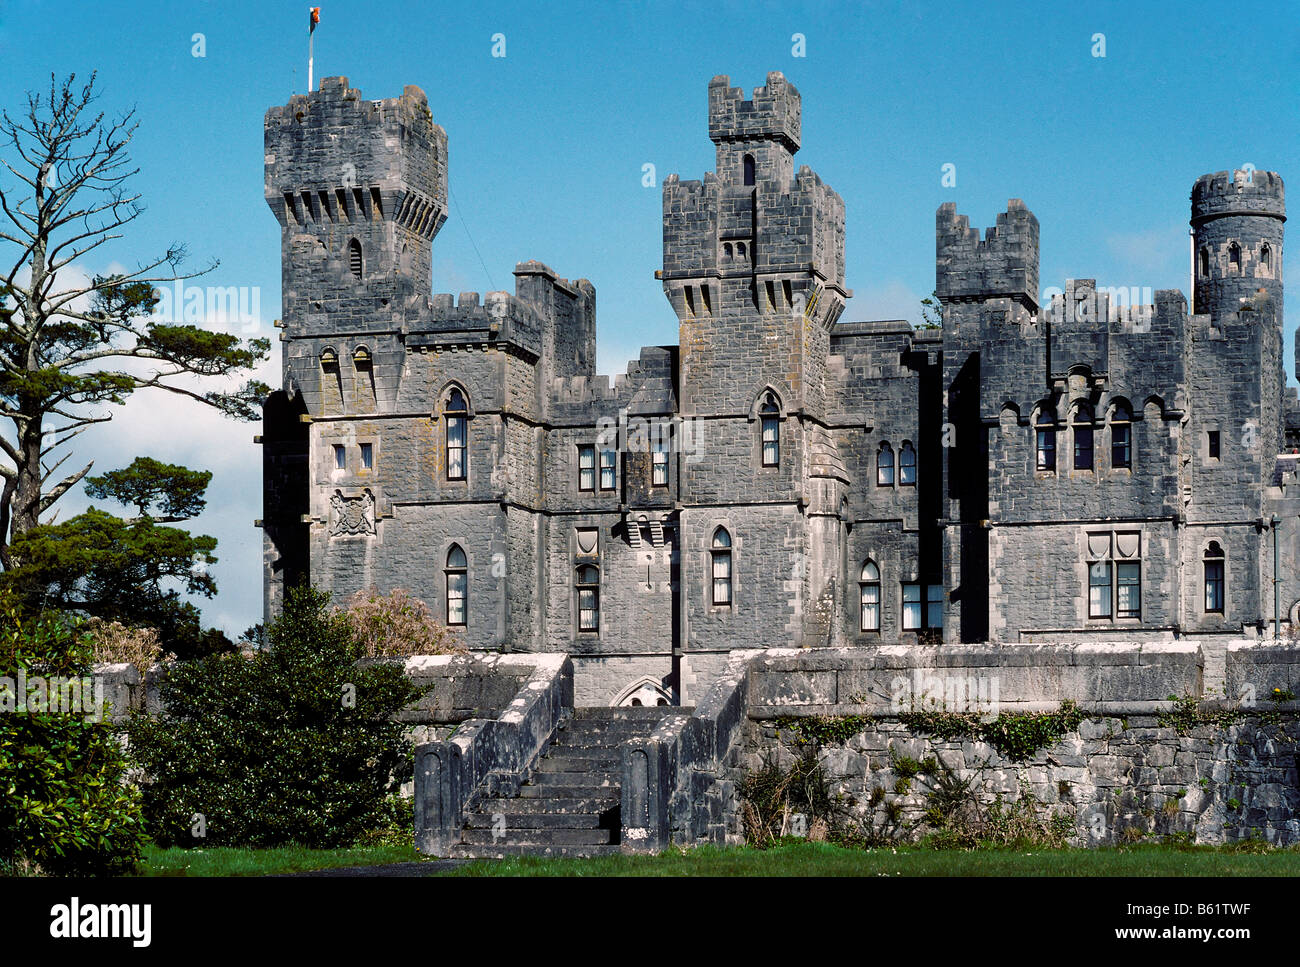 Ashford Castle, Castle Hotel On Lough Corrib, County Mayo, Ireland, Europe